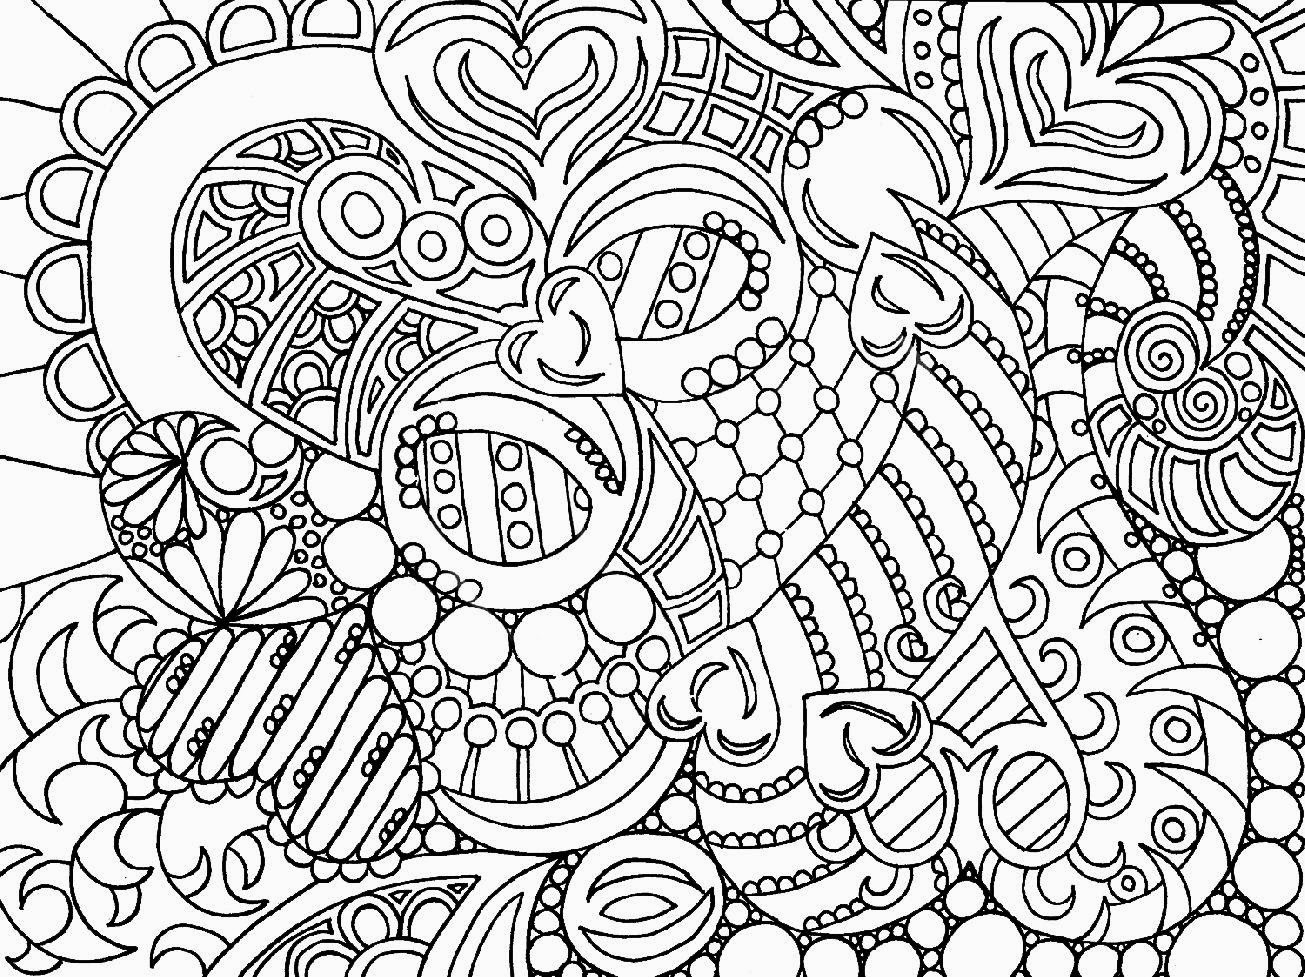 Adult Coloring Sheets | Free Coloring Sheet